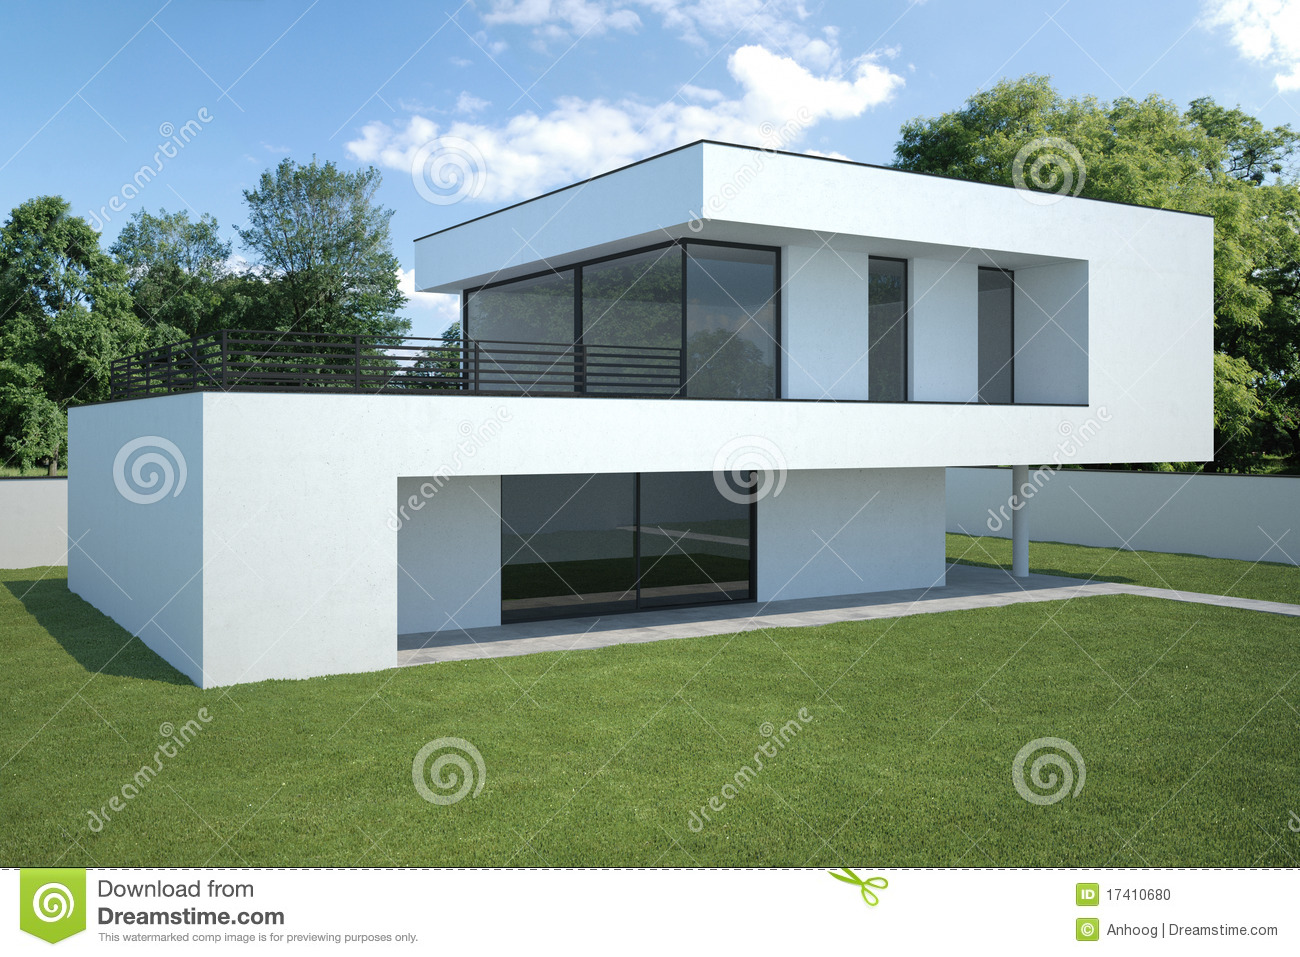 Maison moderne ext rieur avec la pelouse photo stock for Exterieur maison moderne